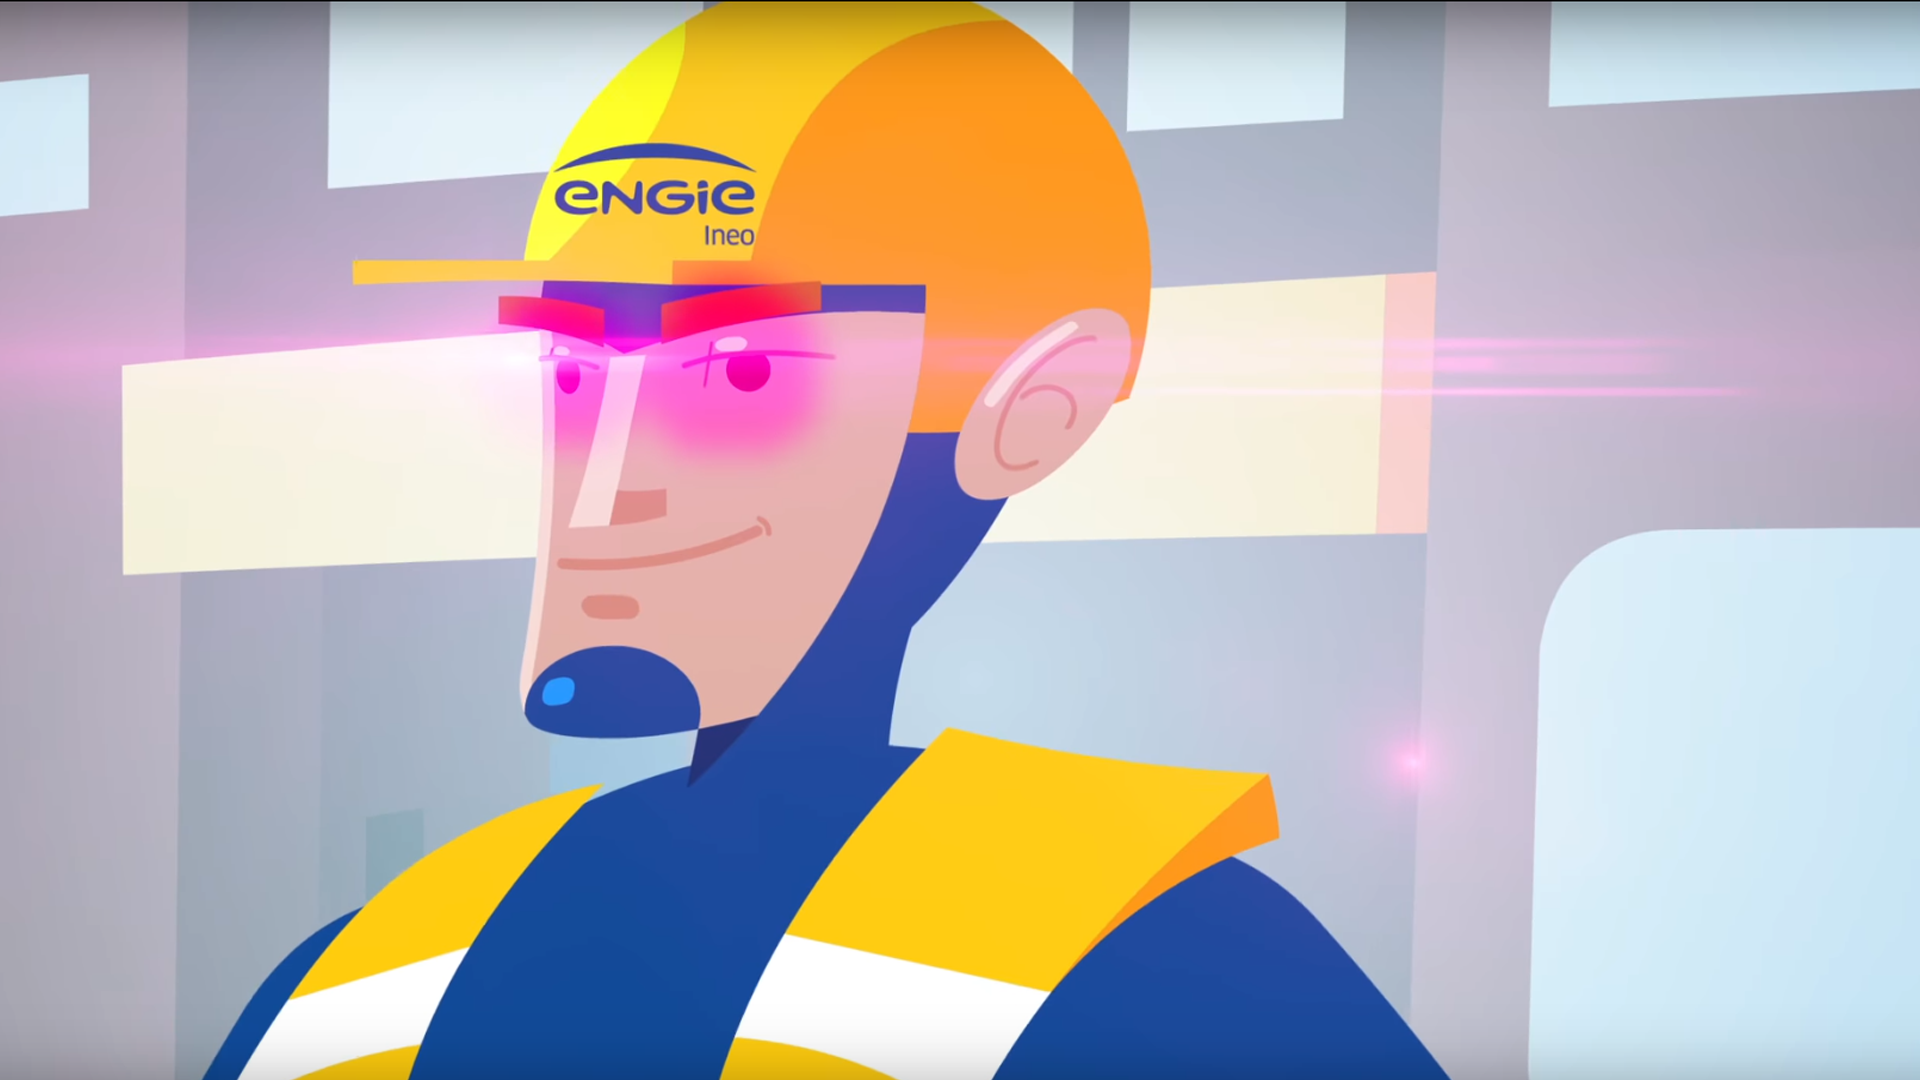 Social media pour ENGIE Ineo